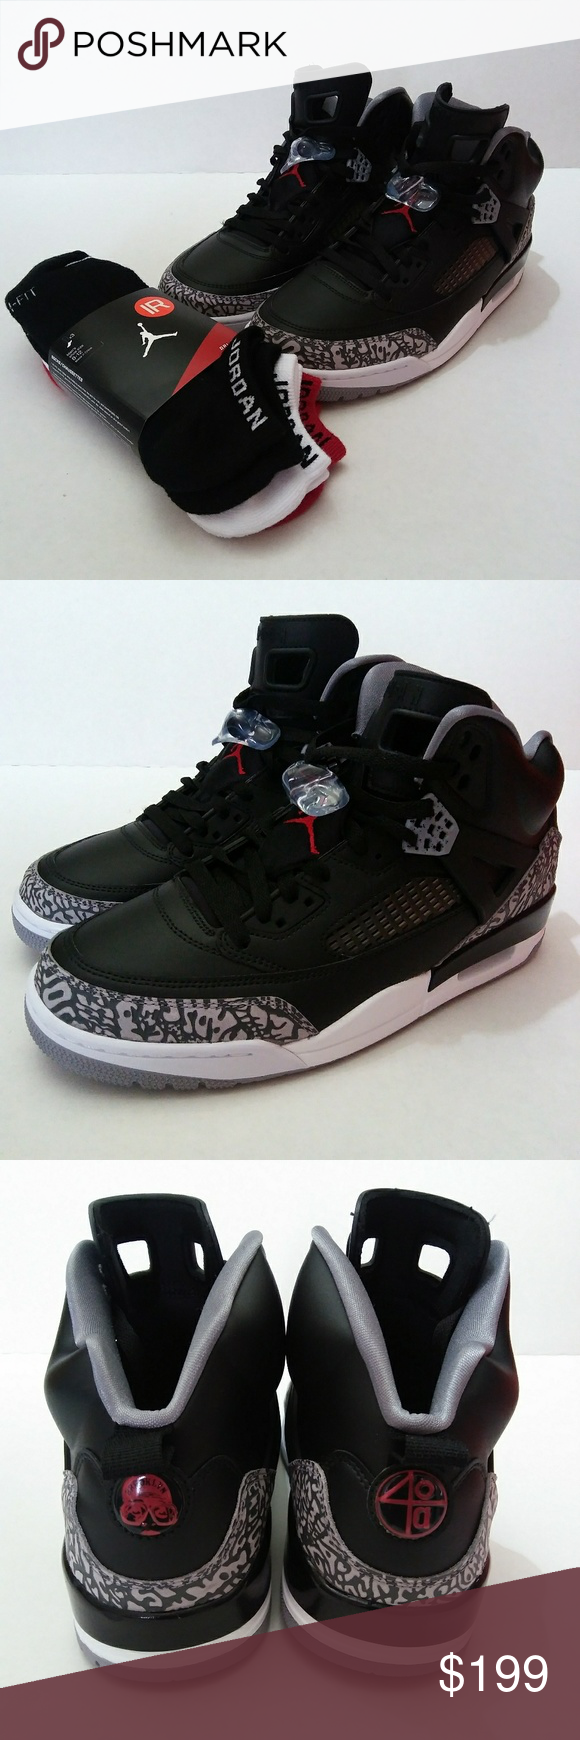 brand new e0499 c2b4e Jordan Spizike Elephant Print Cement Red New Mens Jordan Spizike Sz 10.5  100% Authentic Comes With Box No Box Top Black Varsity Red-Cement Grey  Comes With 3 ...